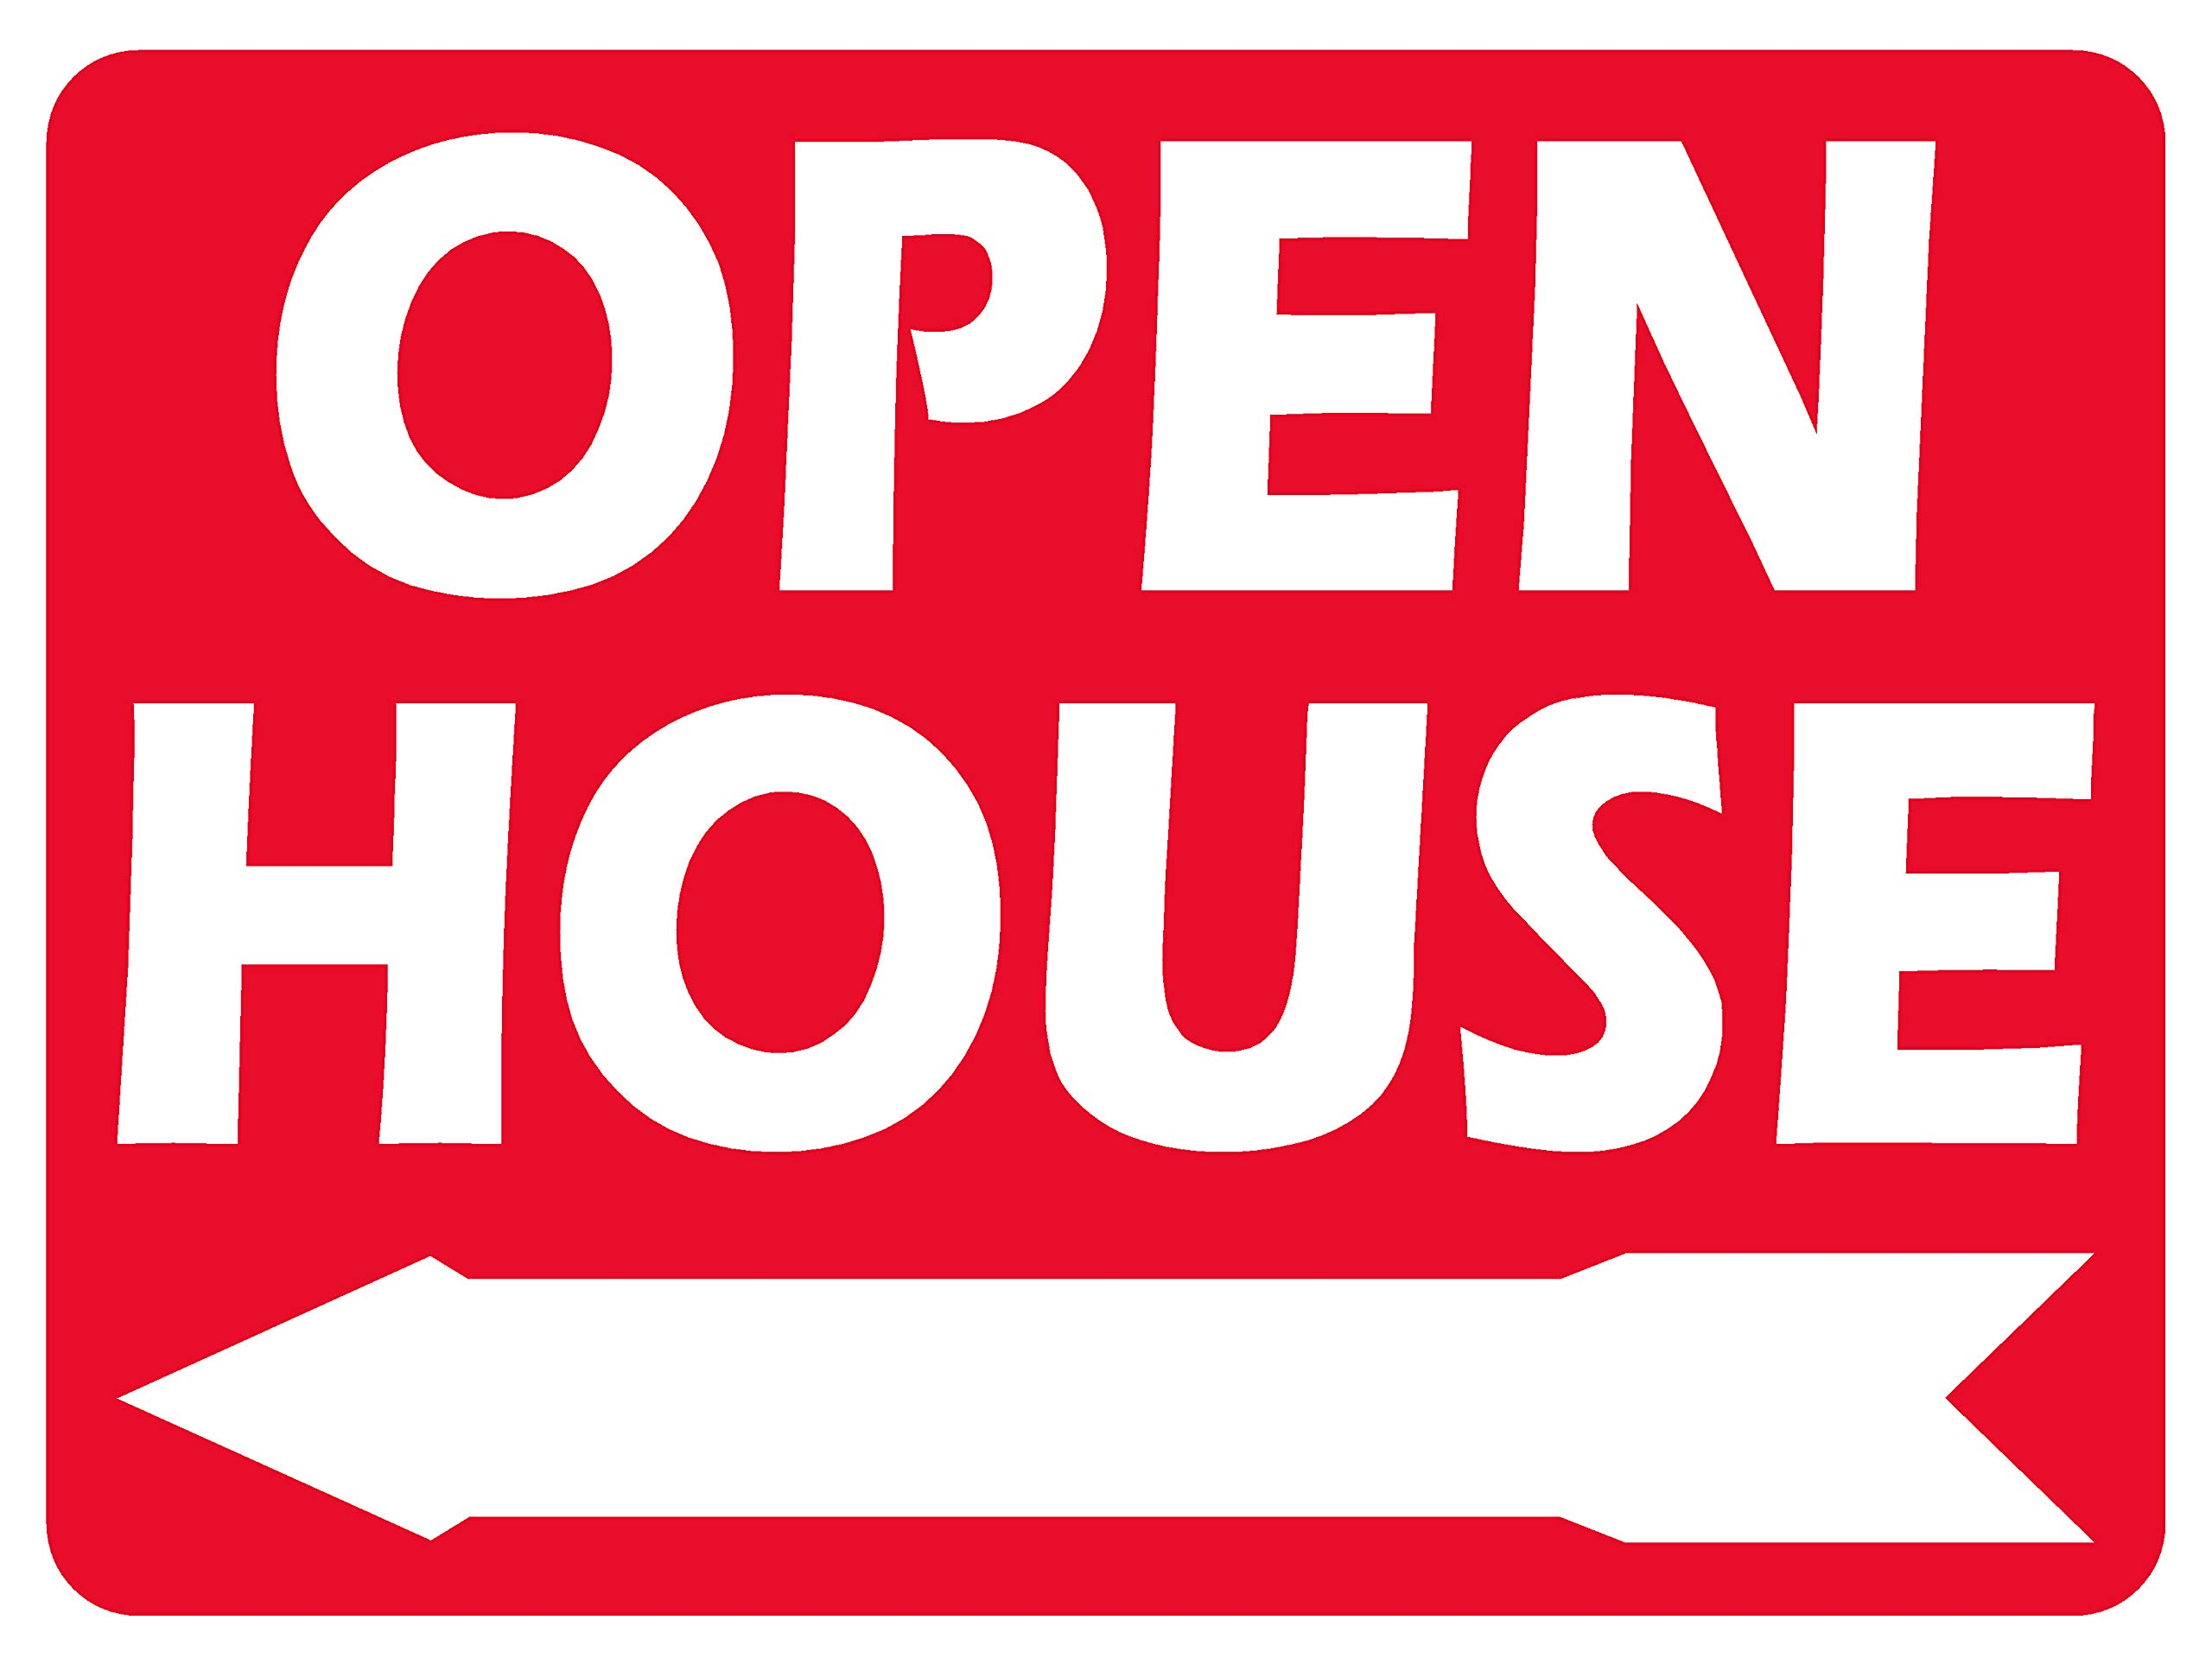 10 Open House White Signs Red Print 2sides 18x24 & Stakes 10x30